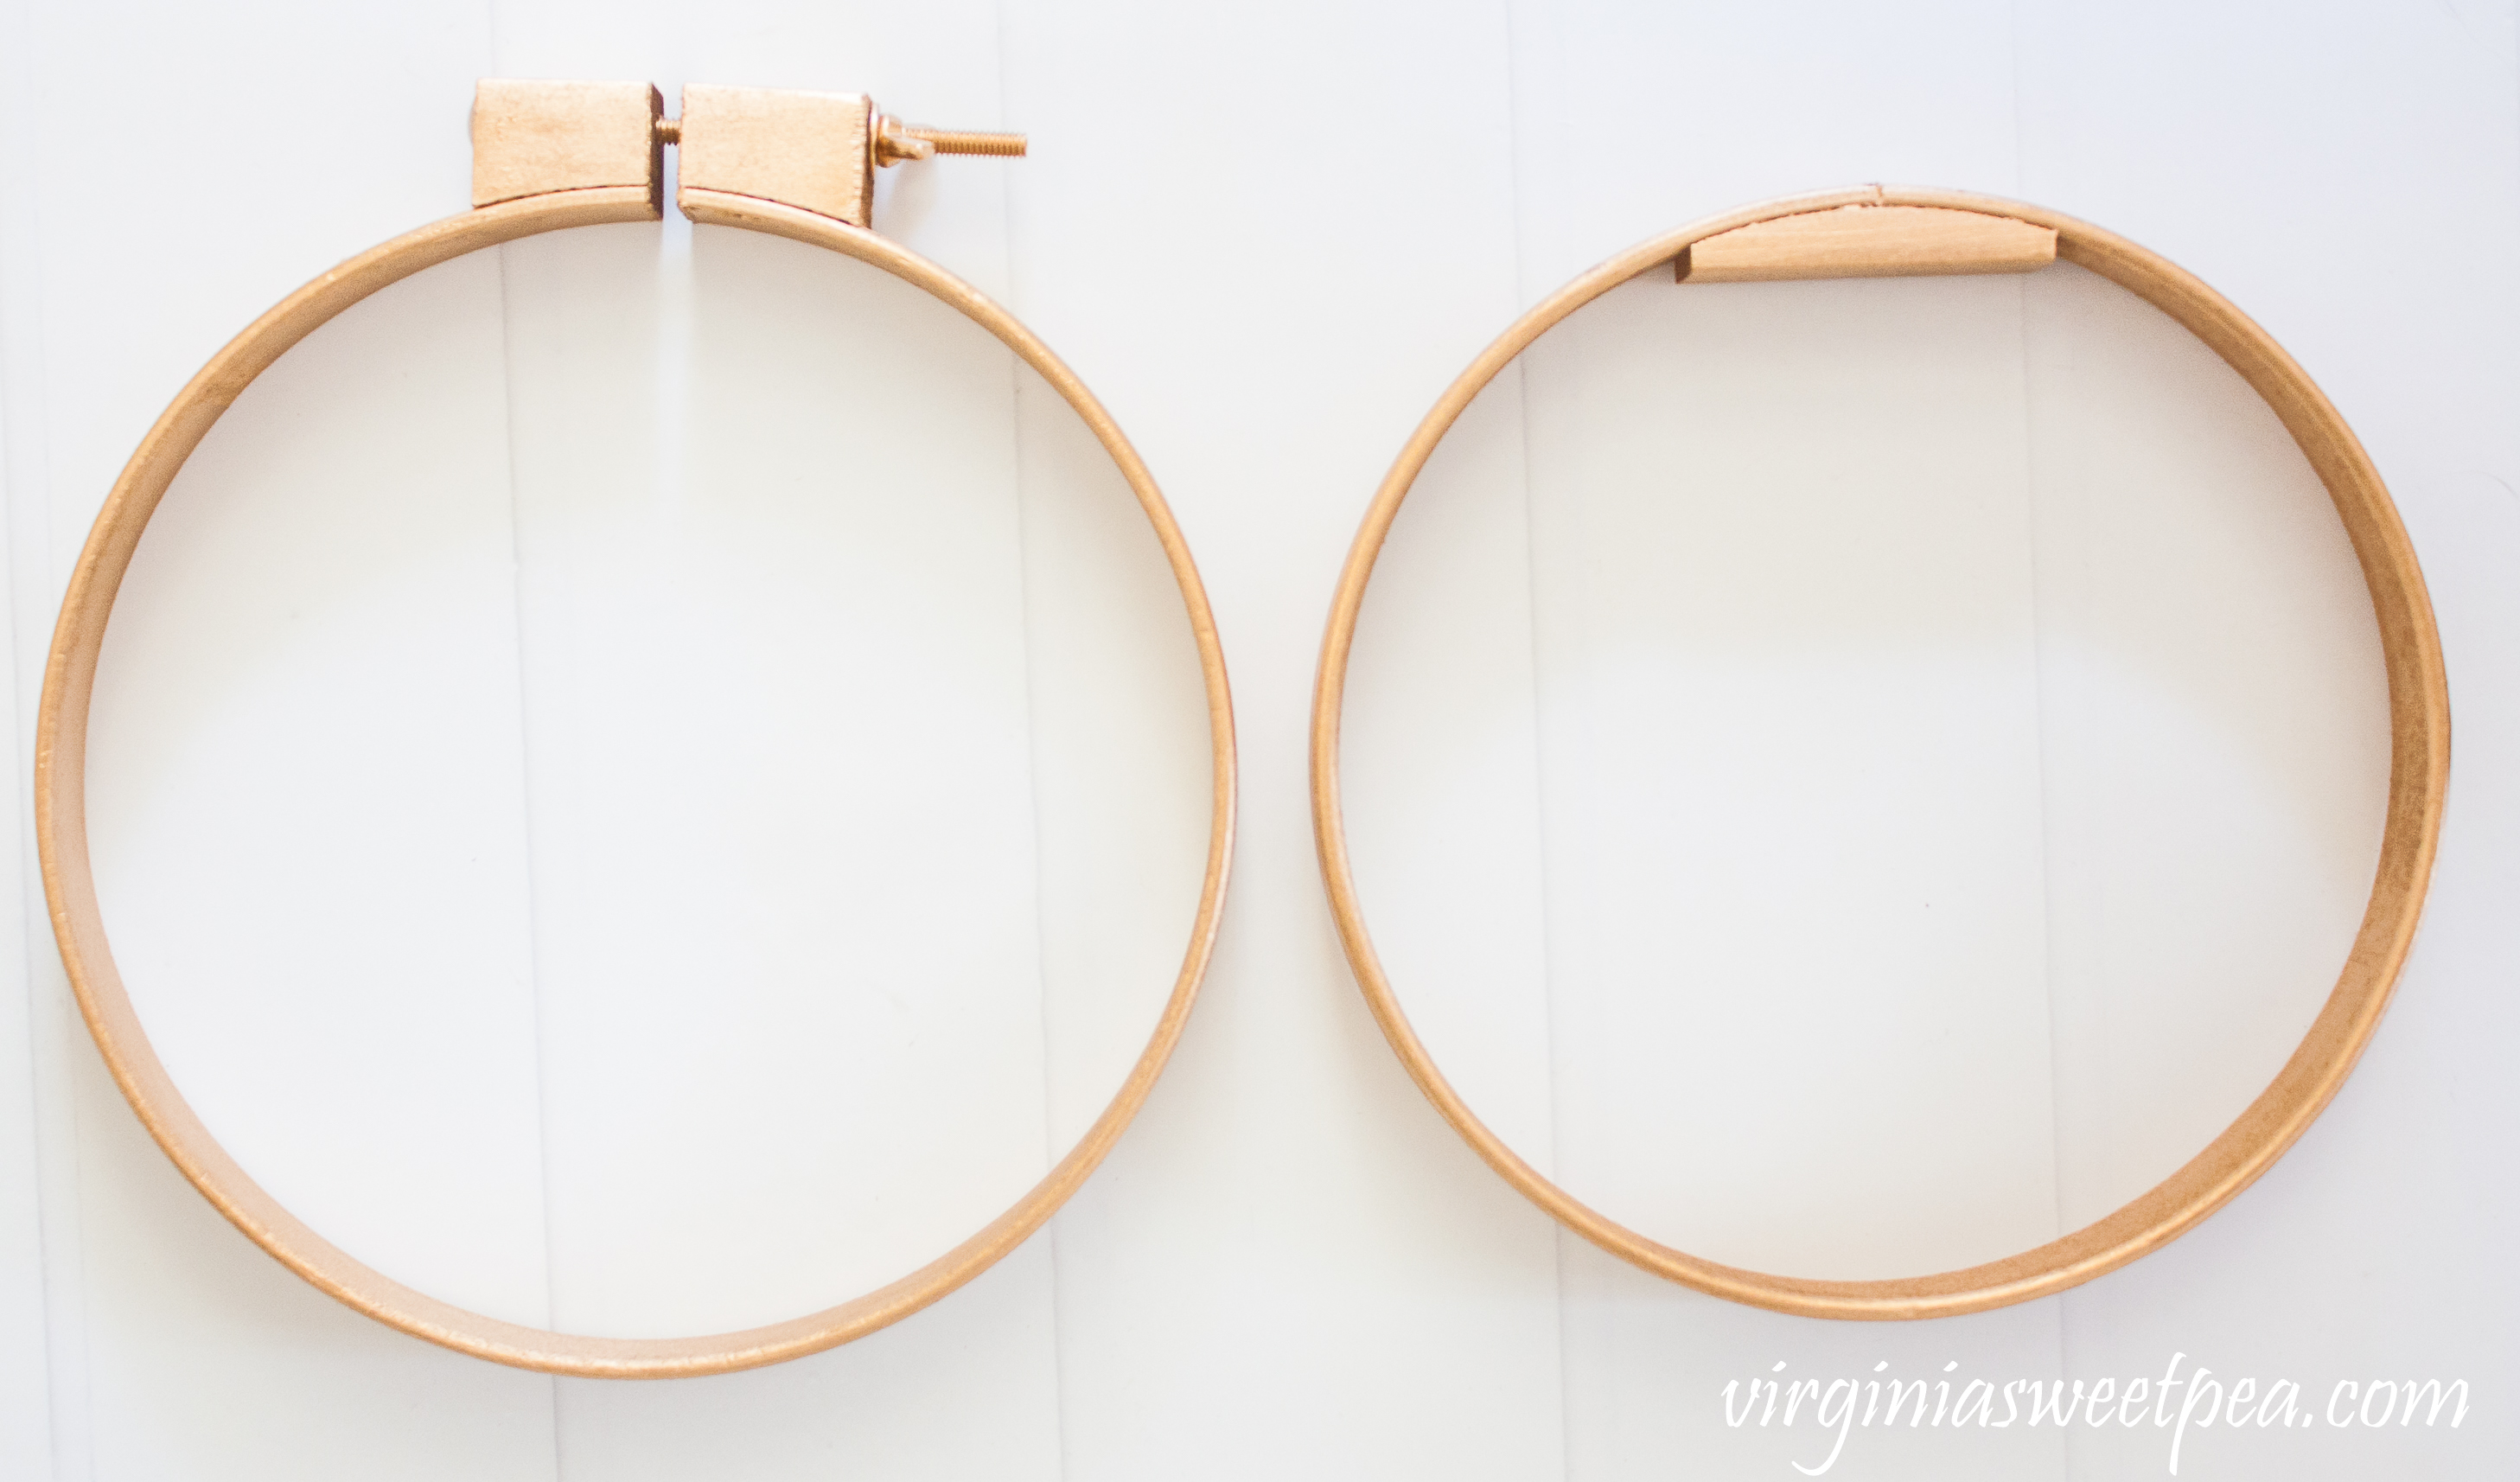 Embroidery hoops spray painted gold